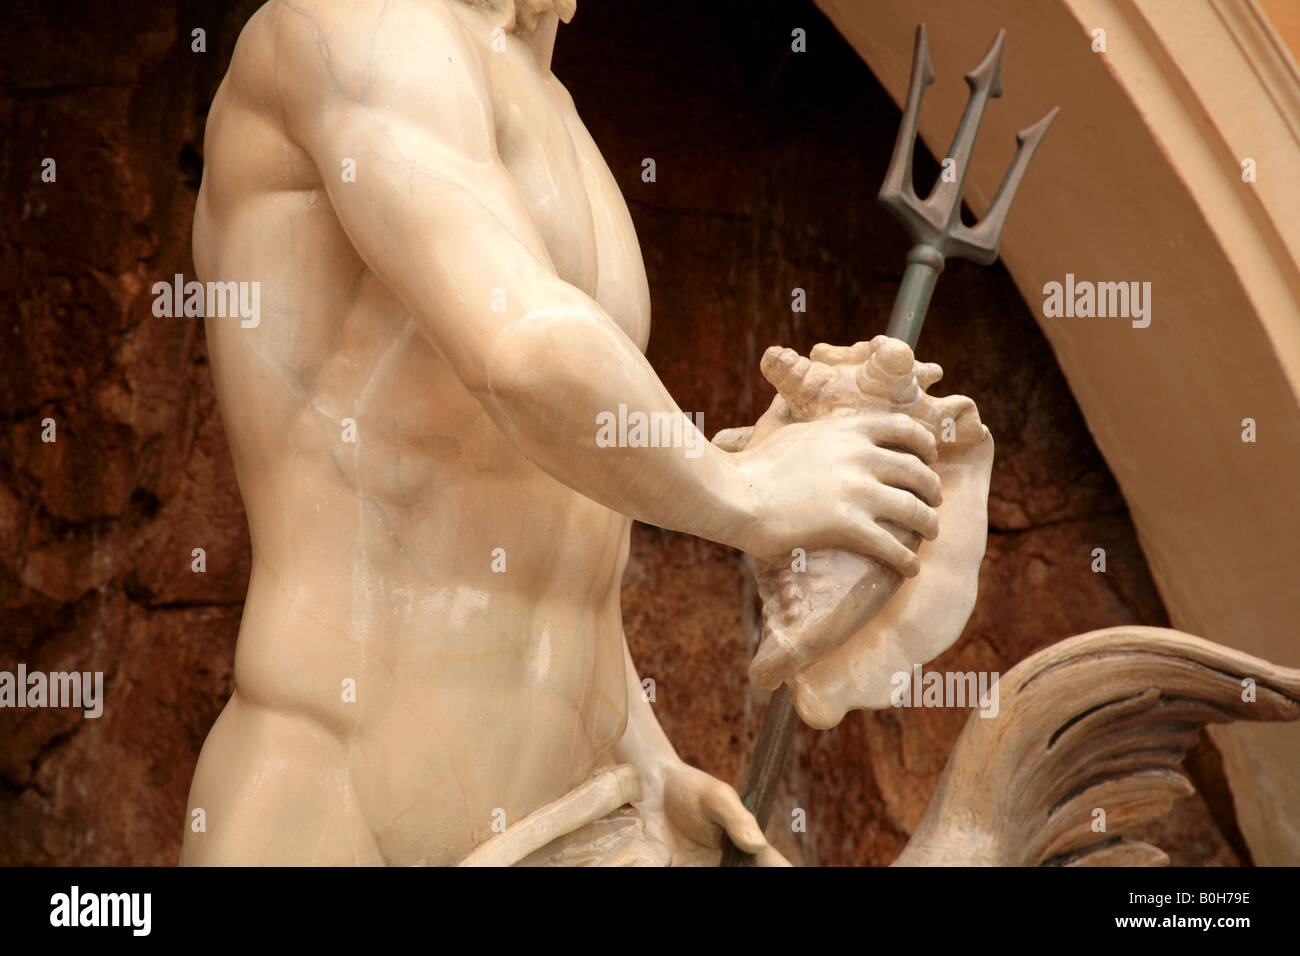 Italy at Epcot s World Showcase Neptune Statue. For Editorial use Only - Stock Image